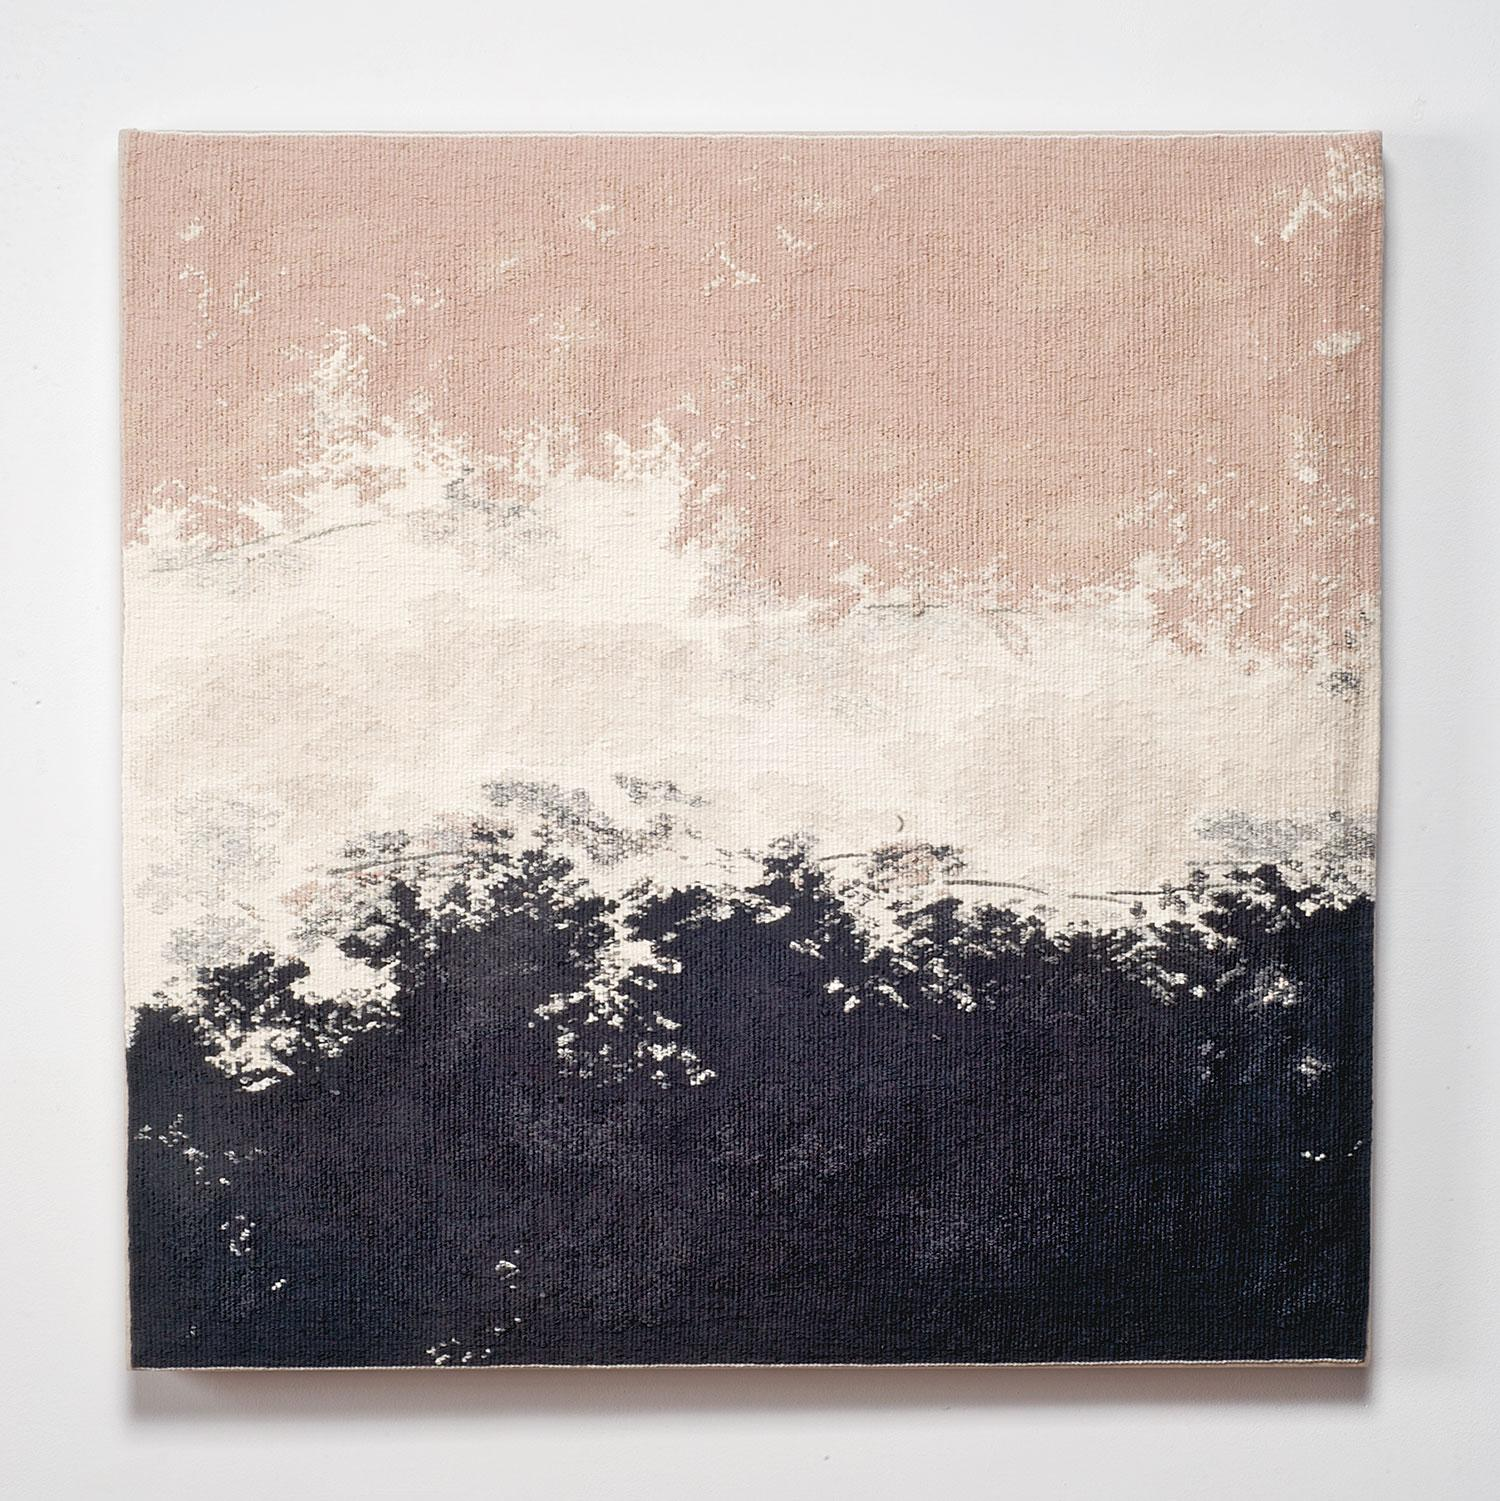 Broken White Band with Pink, Contemporary Abstract Tapestry, Textile Sculpture